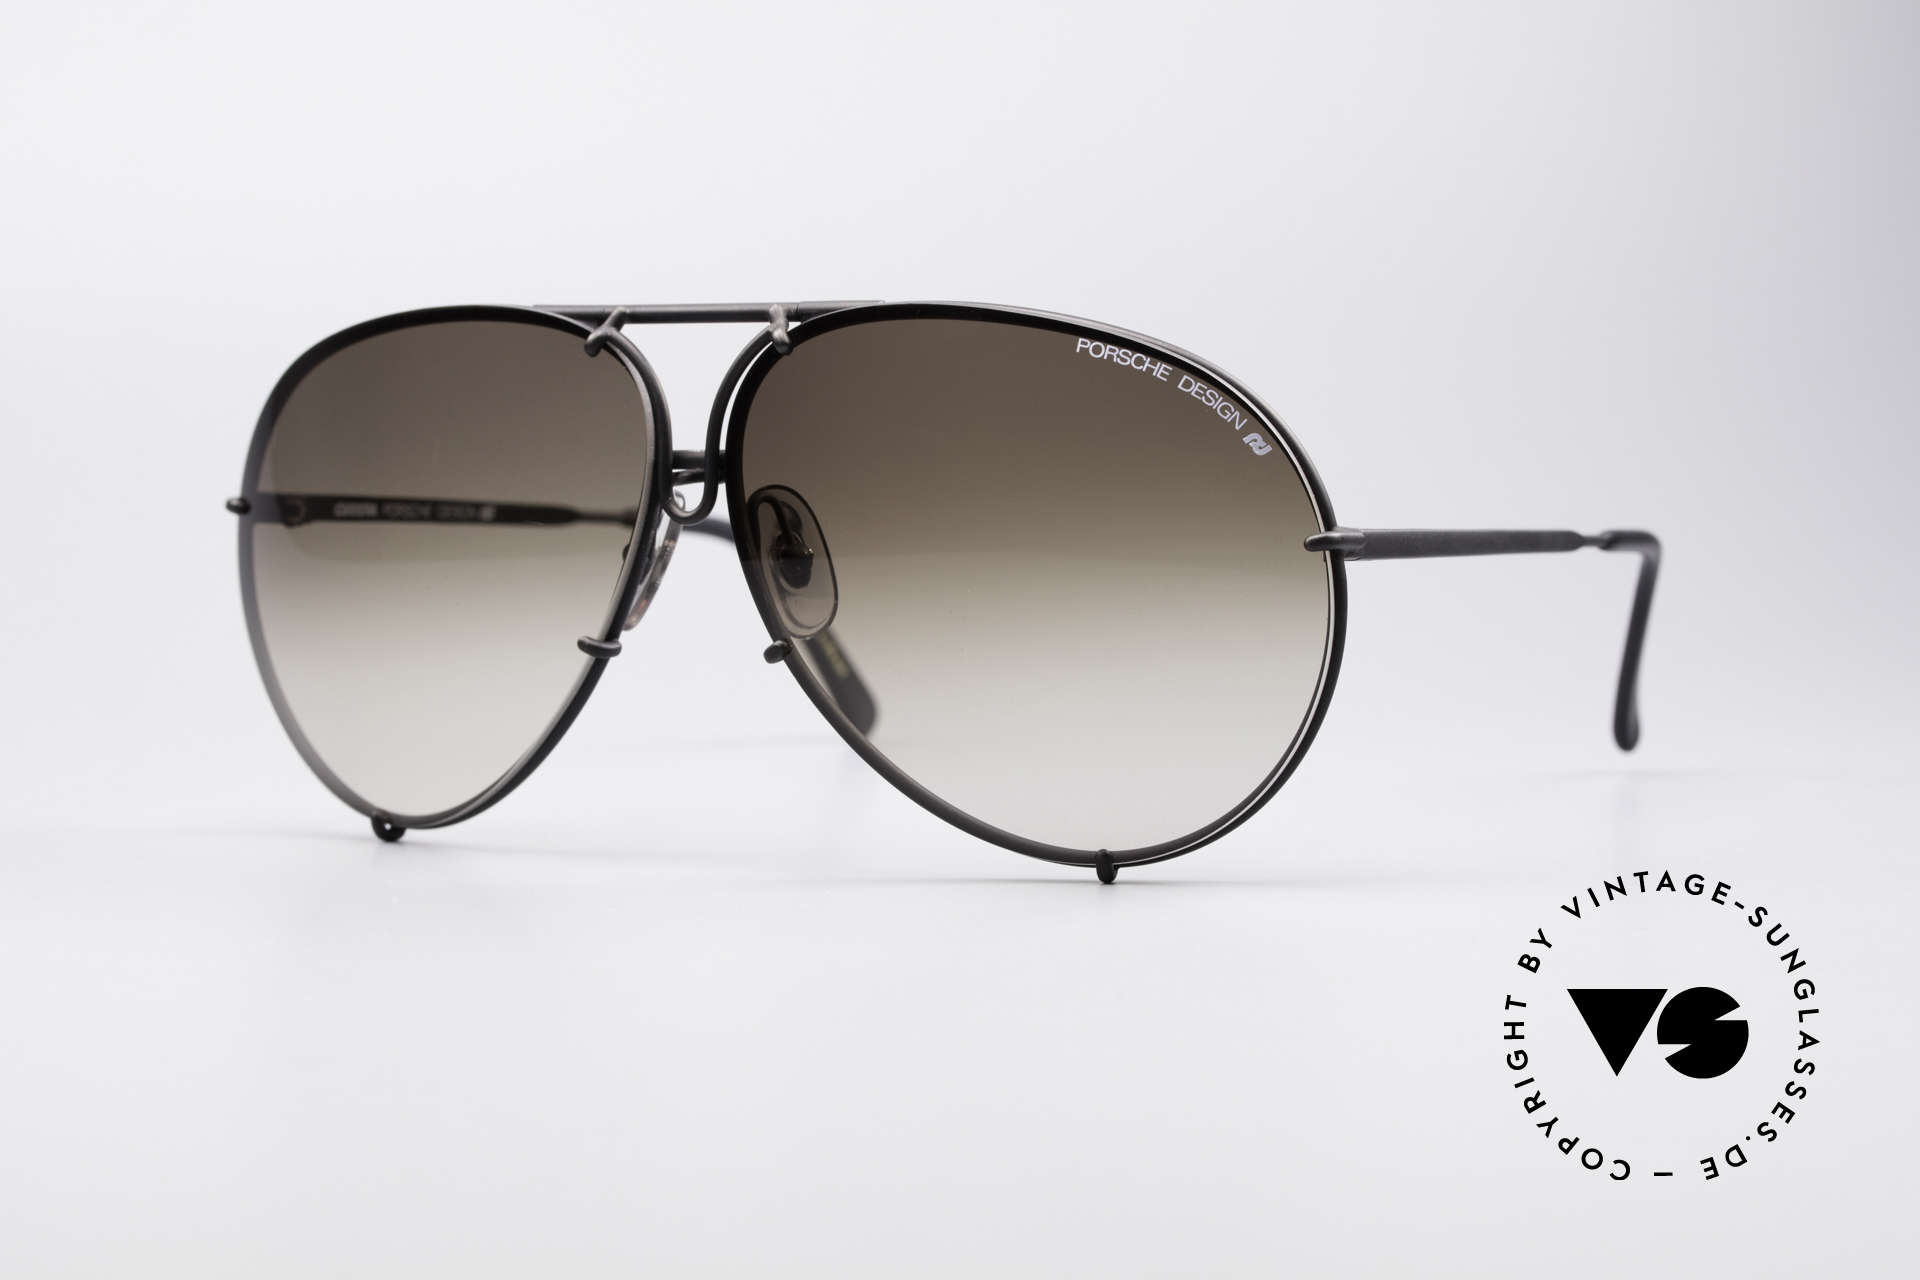 Porsche 5621 Large 80's Aviator Shades, vintage Porsche Design by Carrera shades from 1987, Made for Men